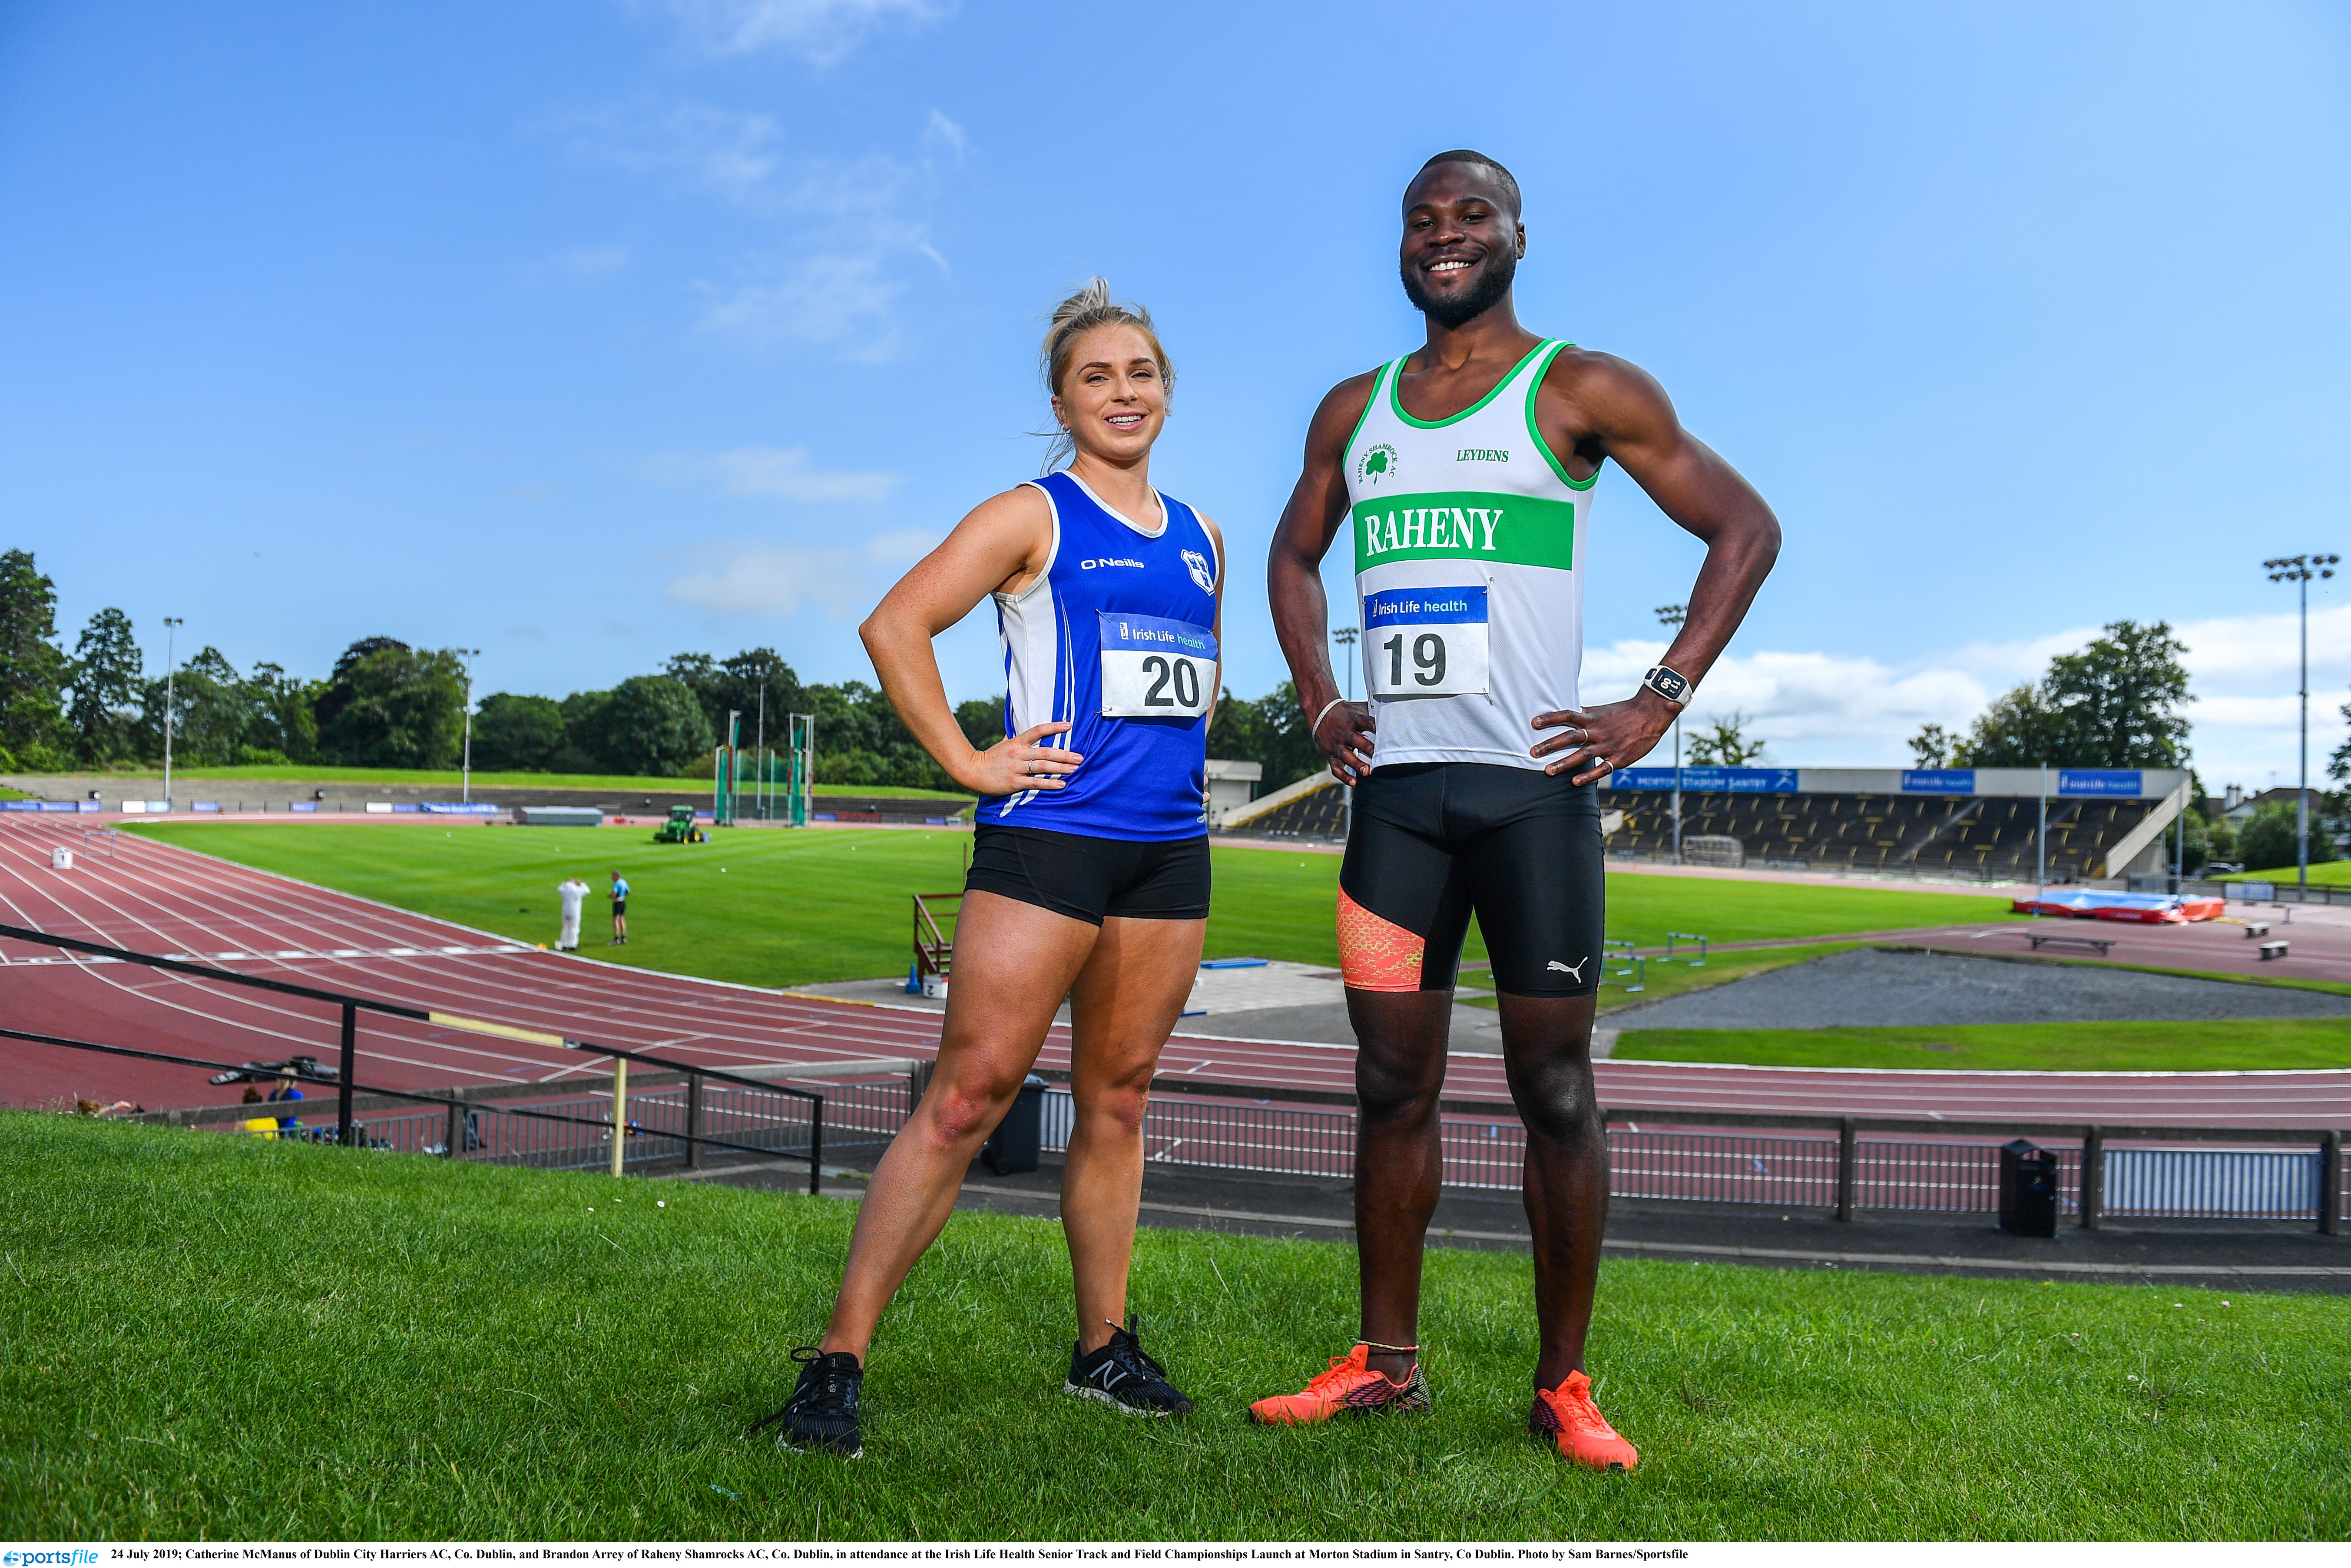 A festival of true competition set for Santry